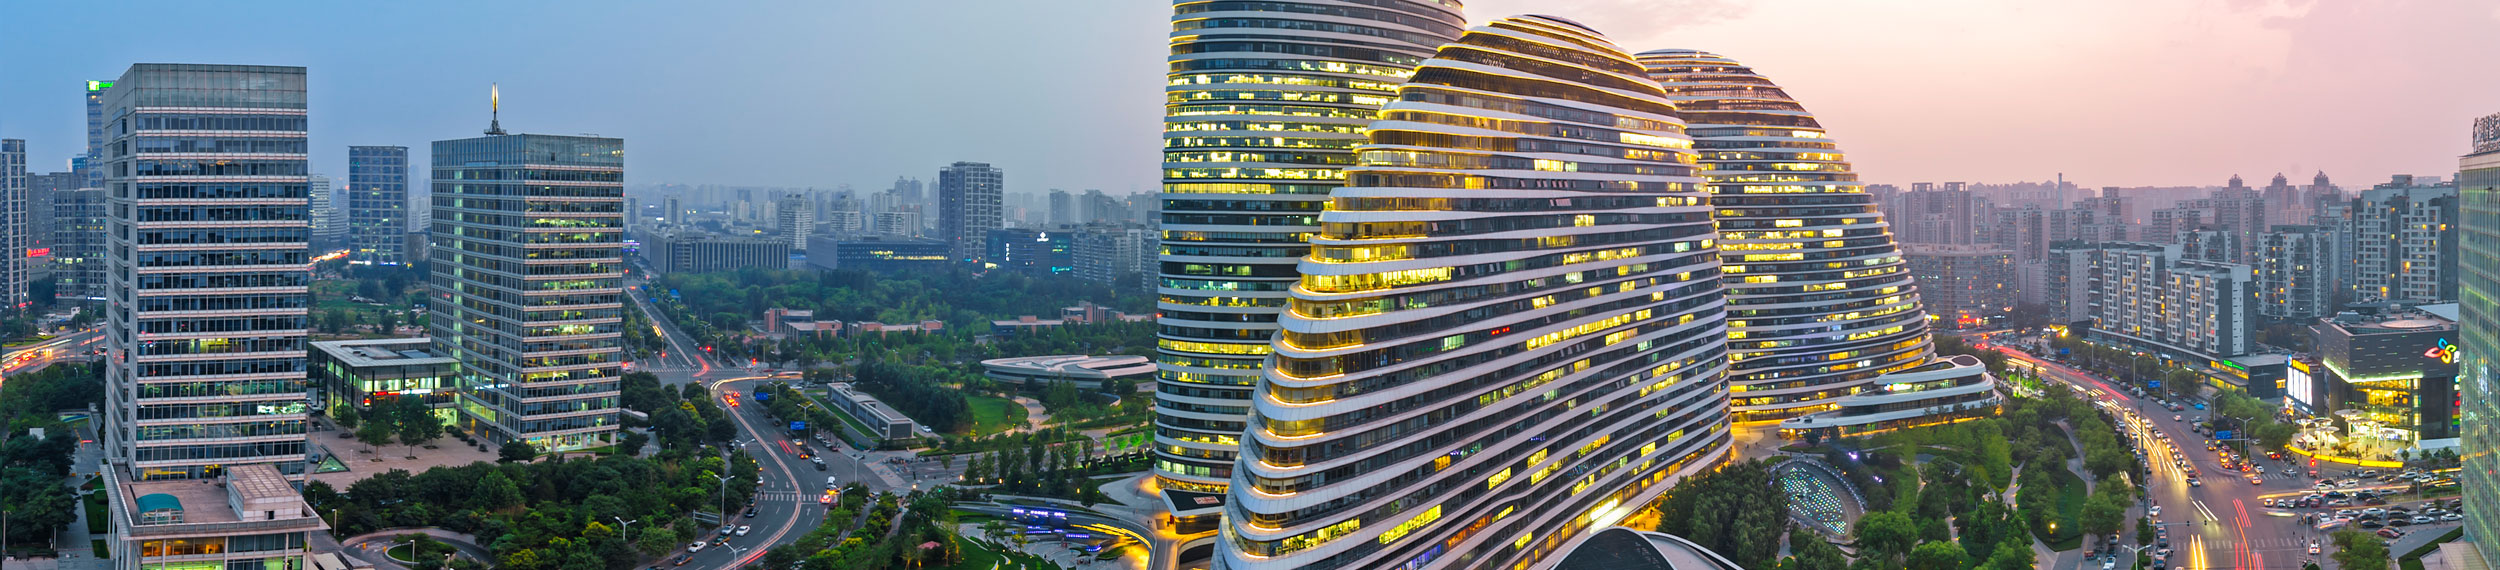 Aerial shot of three curvilinear asymmetric skyscrapers and Wangjing skyline in Beijing China.